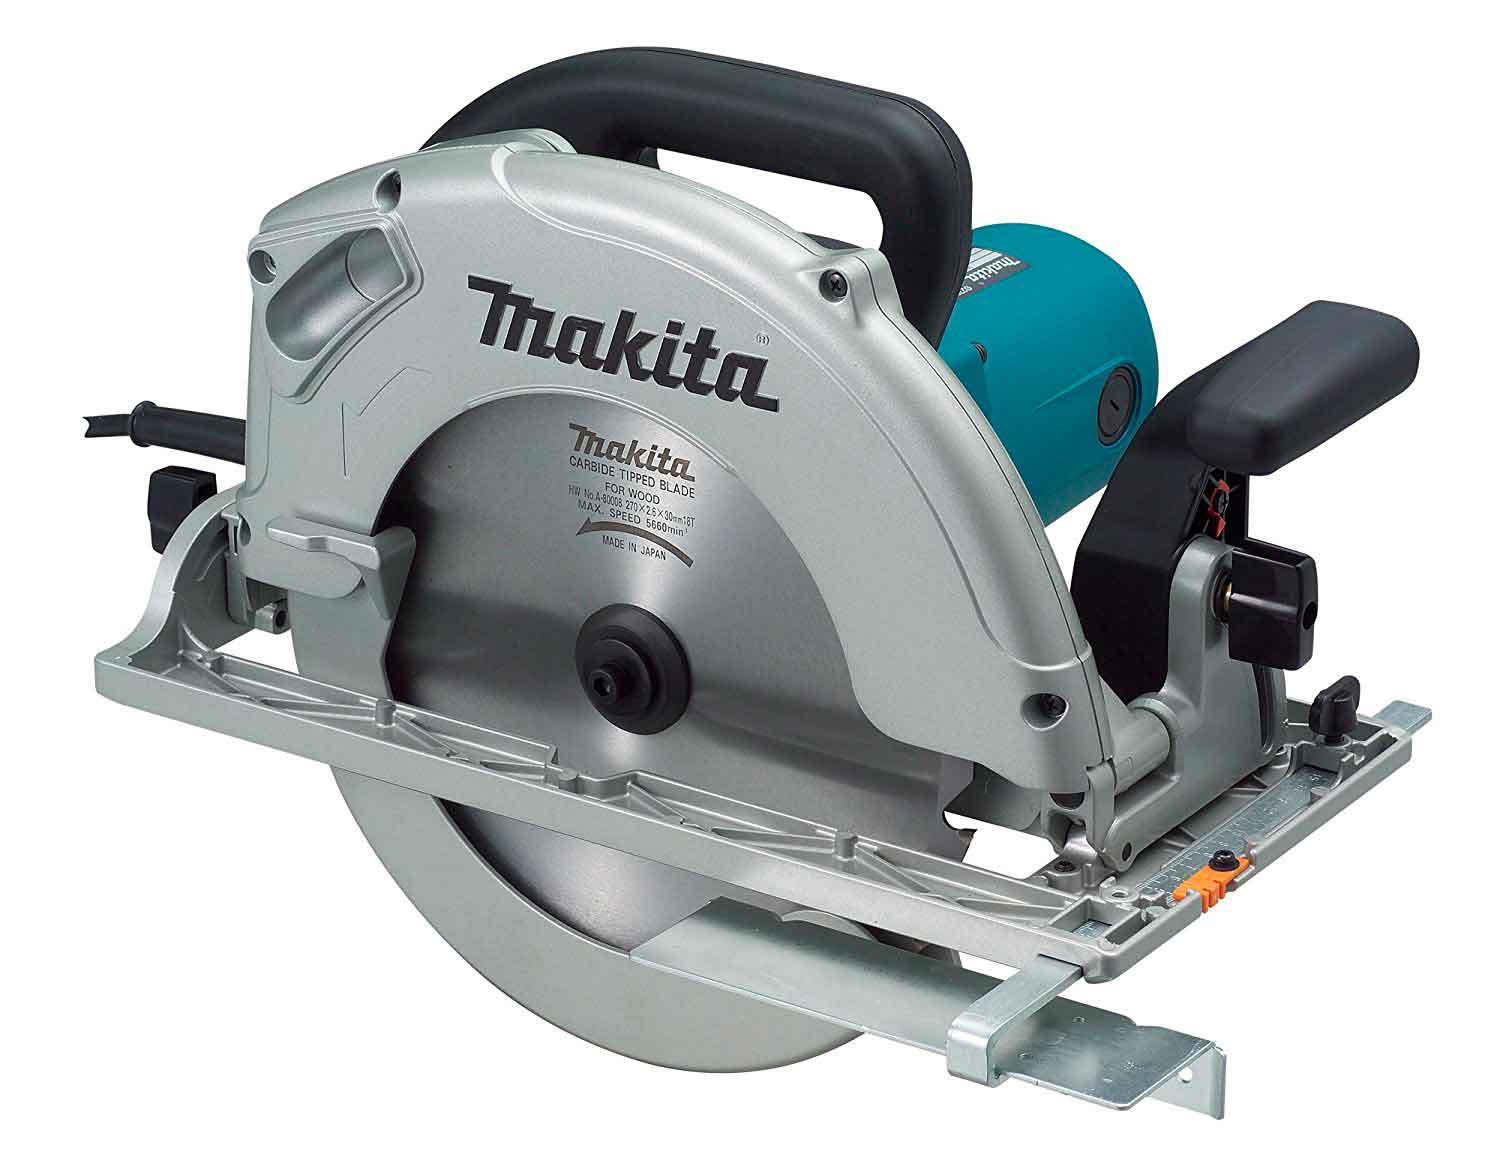 Best circular saw jun 2018 consumer reports review the shaft lock stops and immobilizes the blade and shaft allowing you to remove and install a new blade securely some of these circular saws greentooth Images